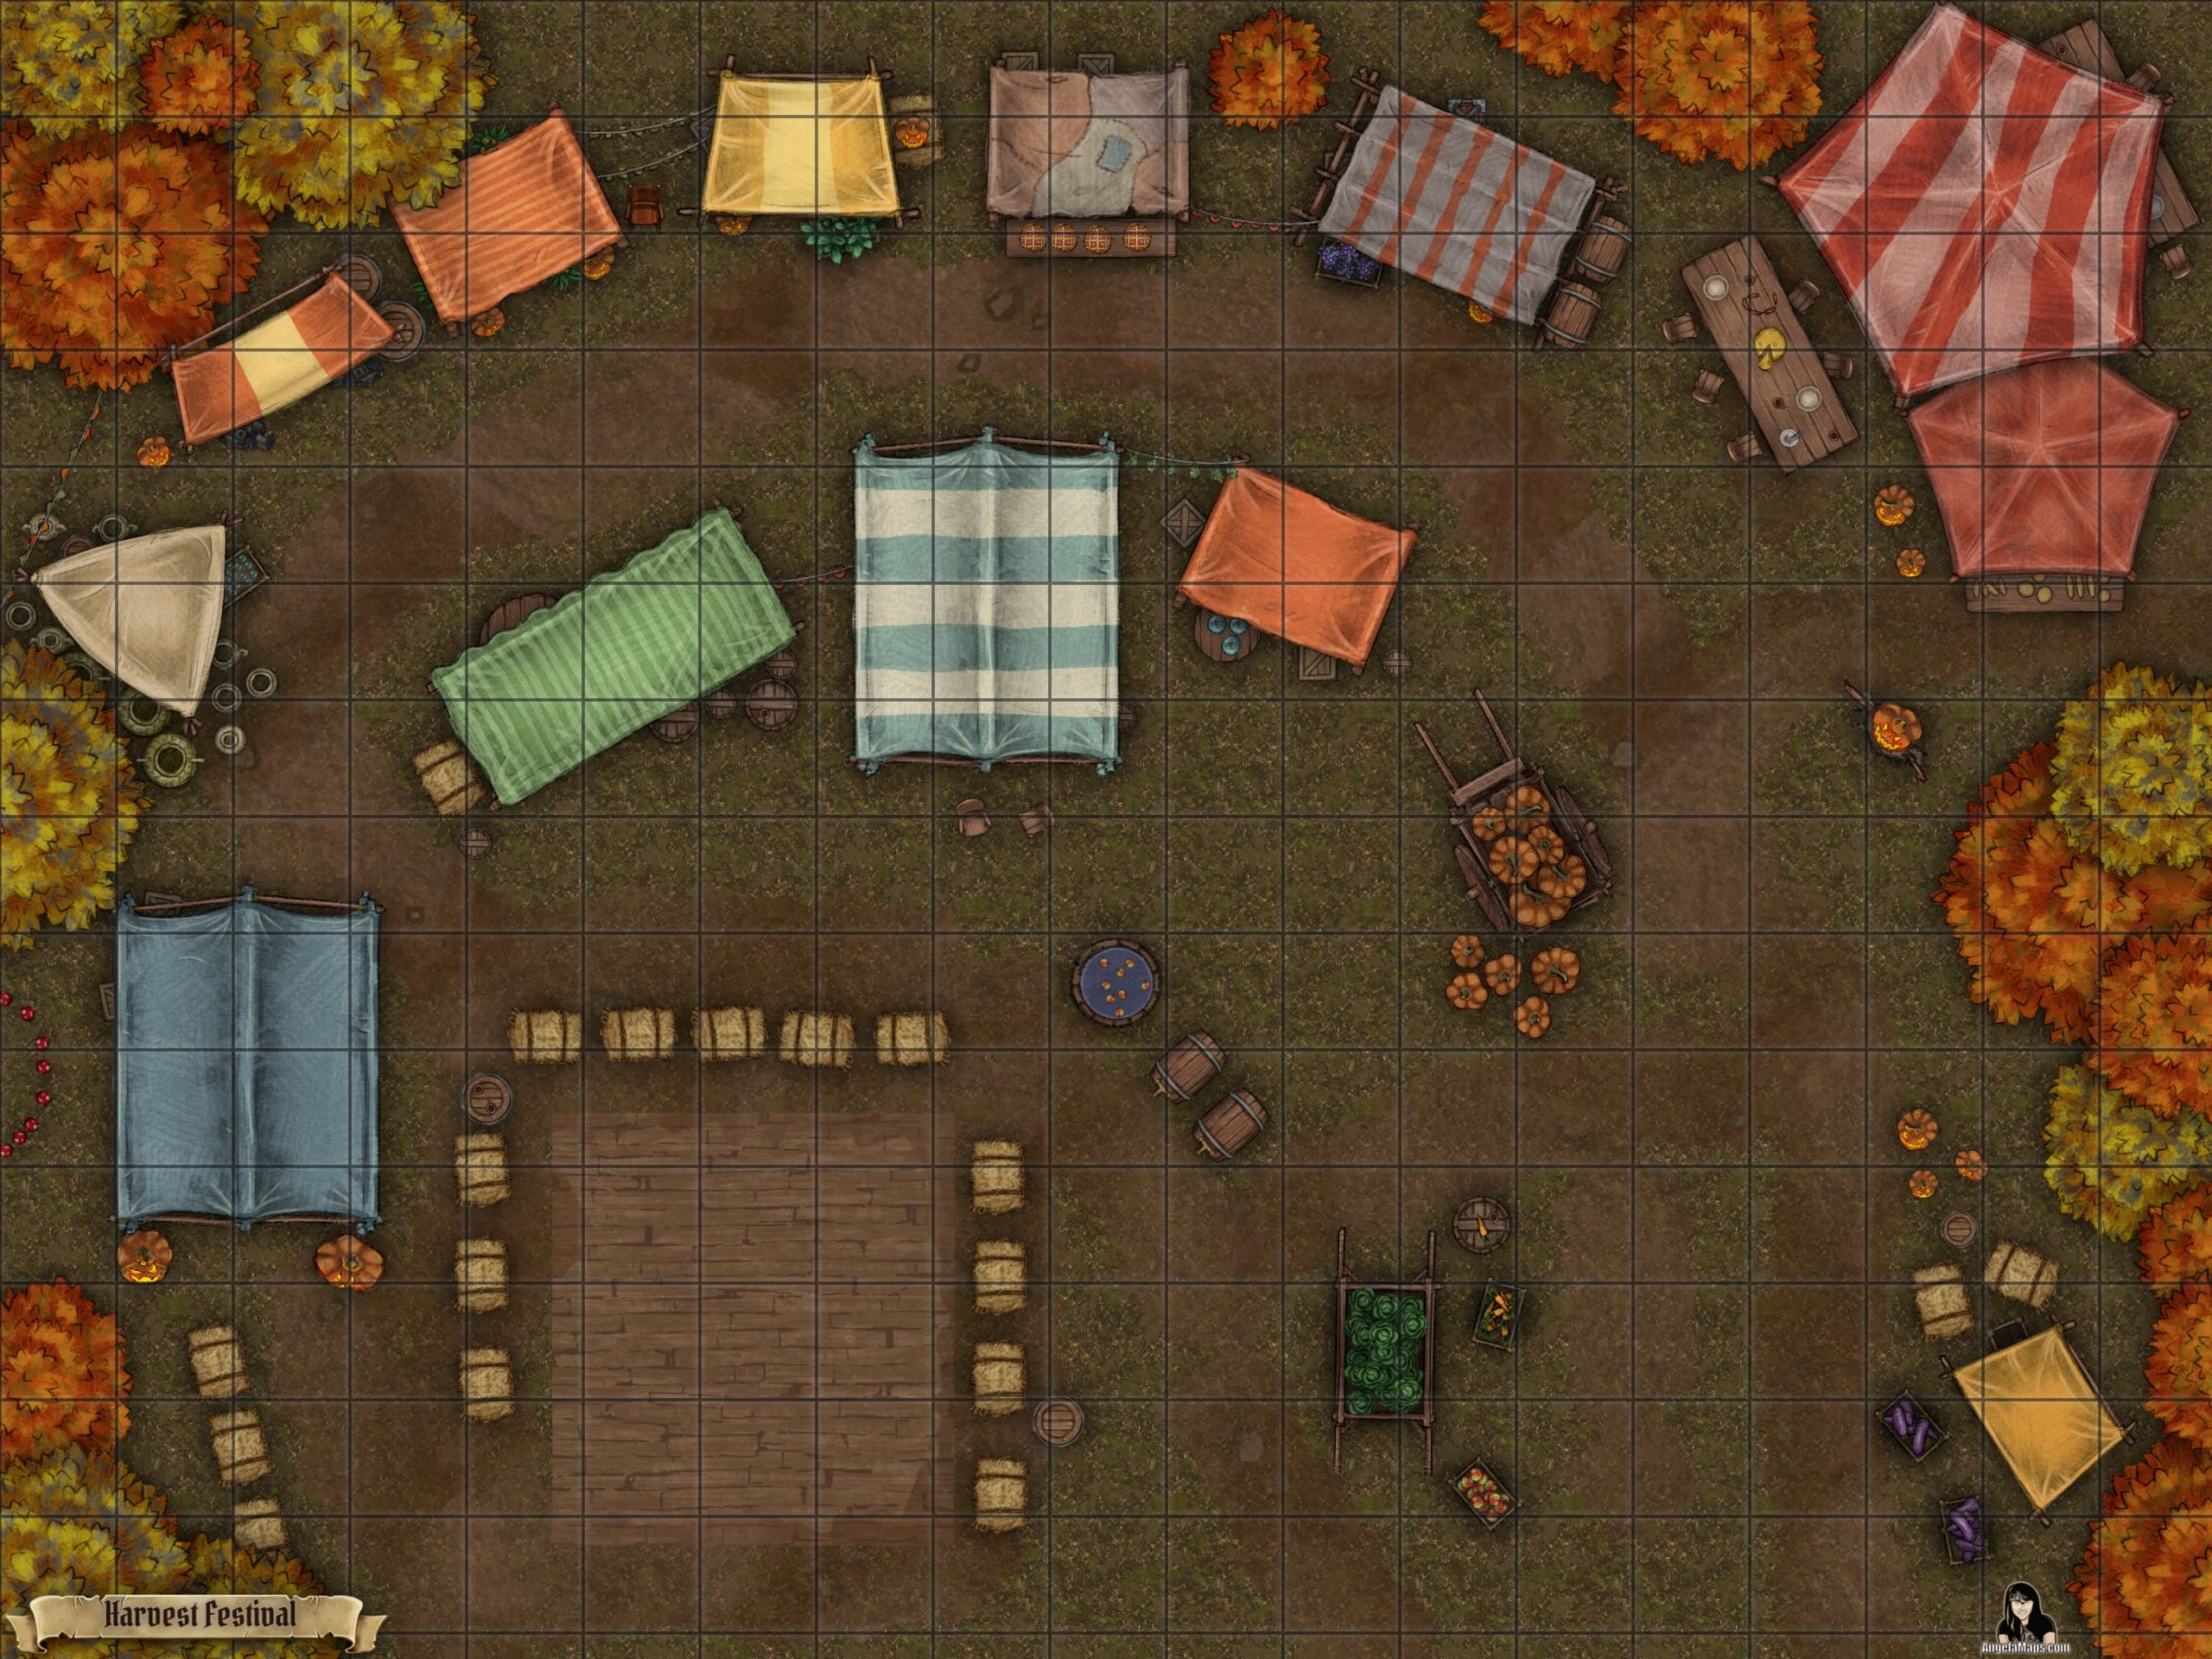 Harvest festival battle map encounter for TTRPGs like D&D and pathfinder